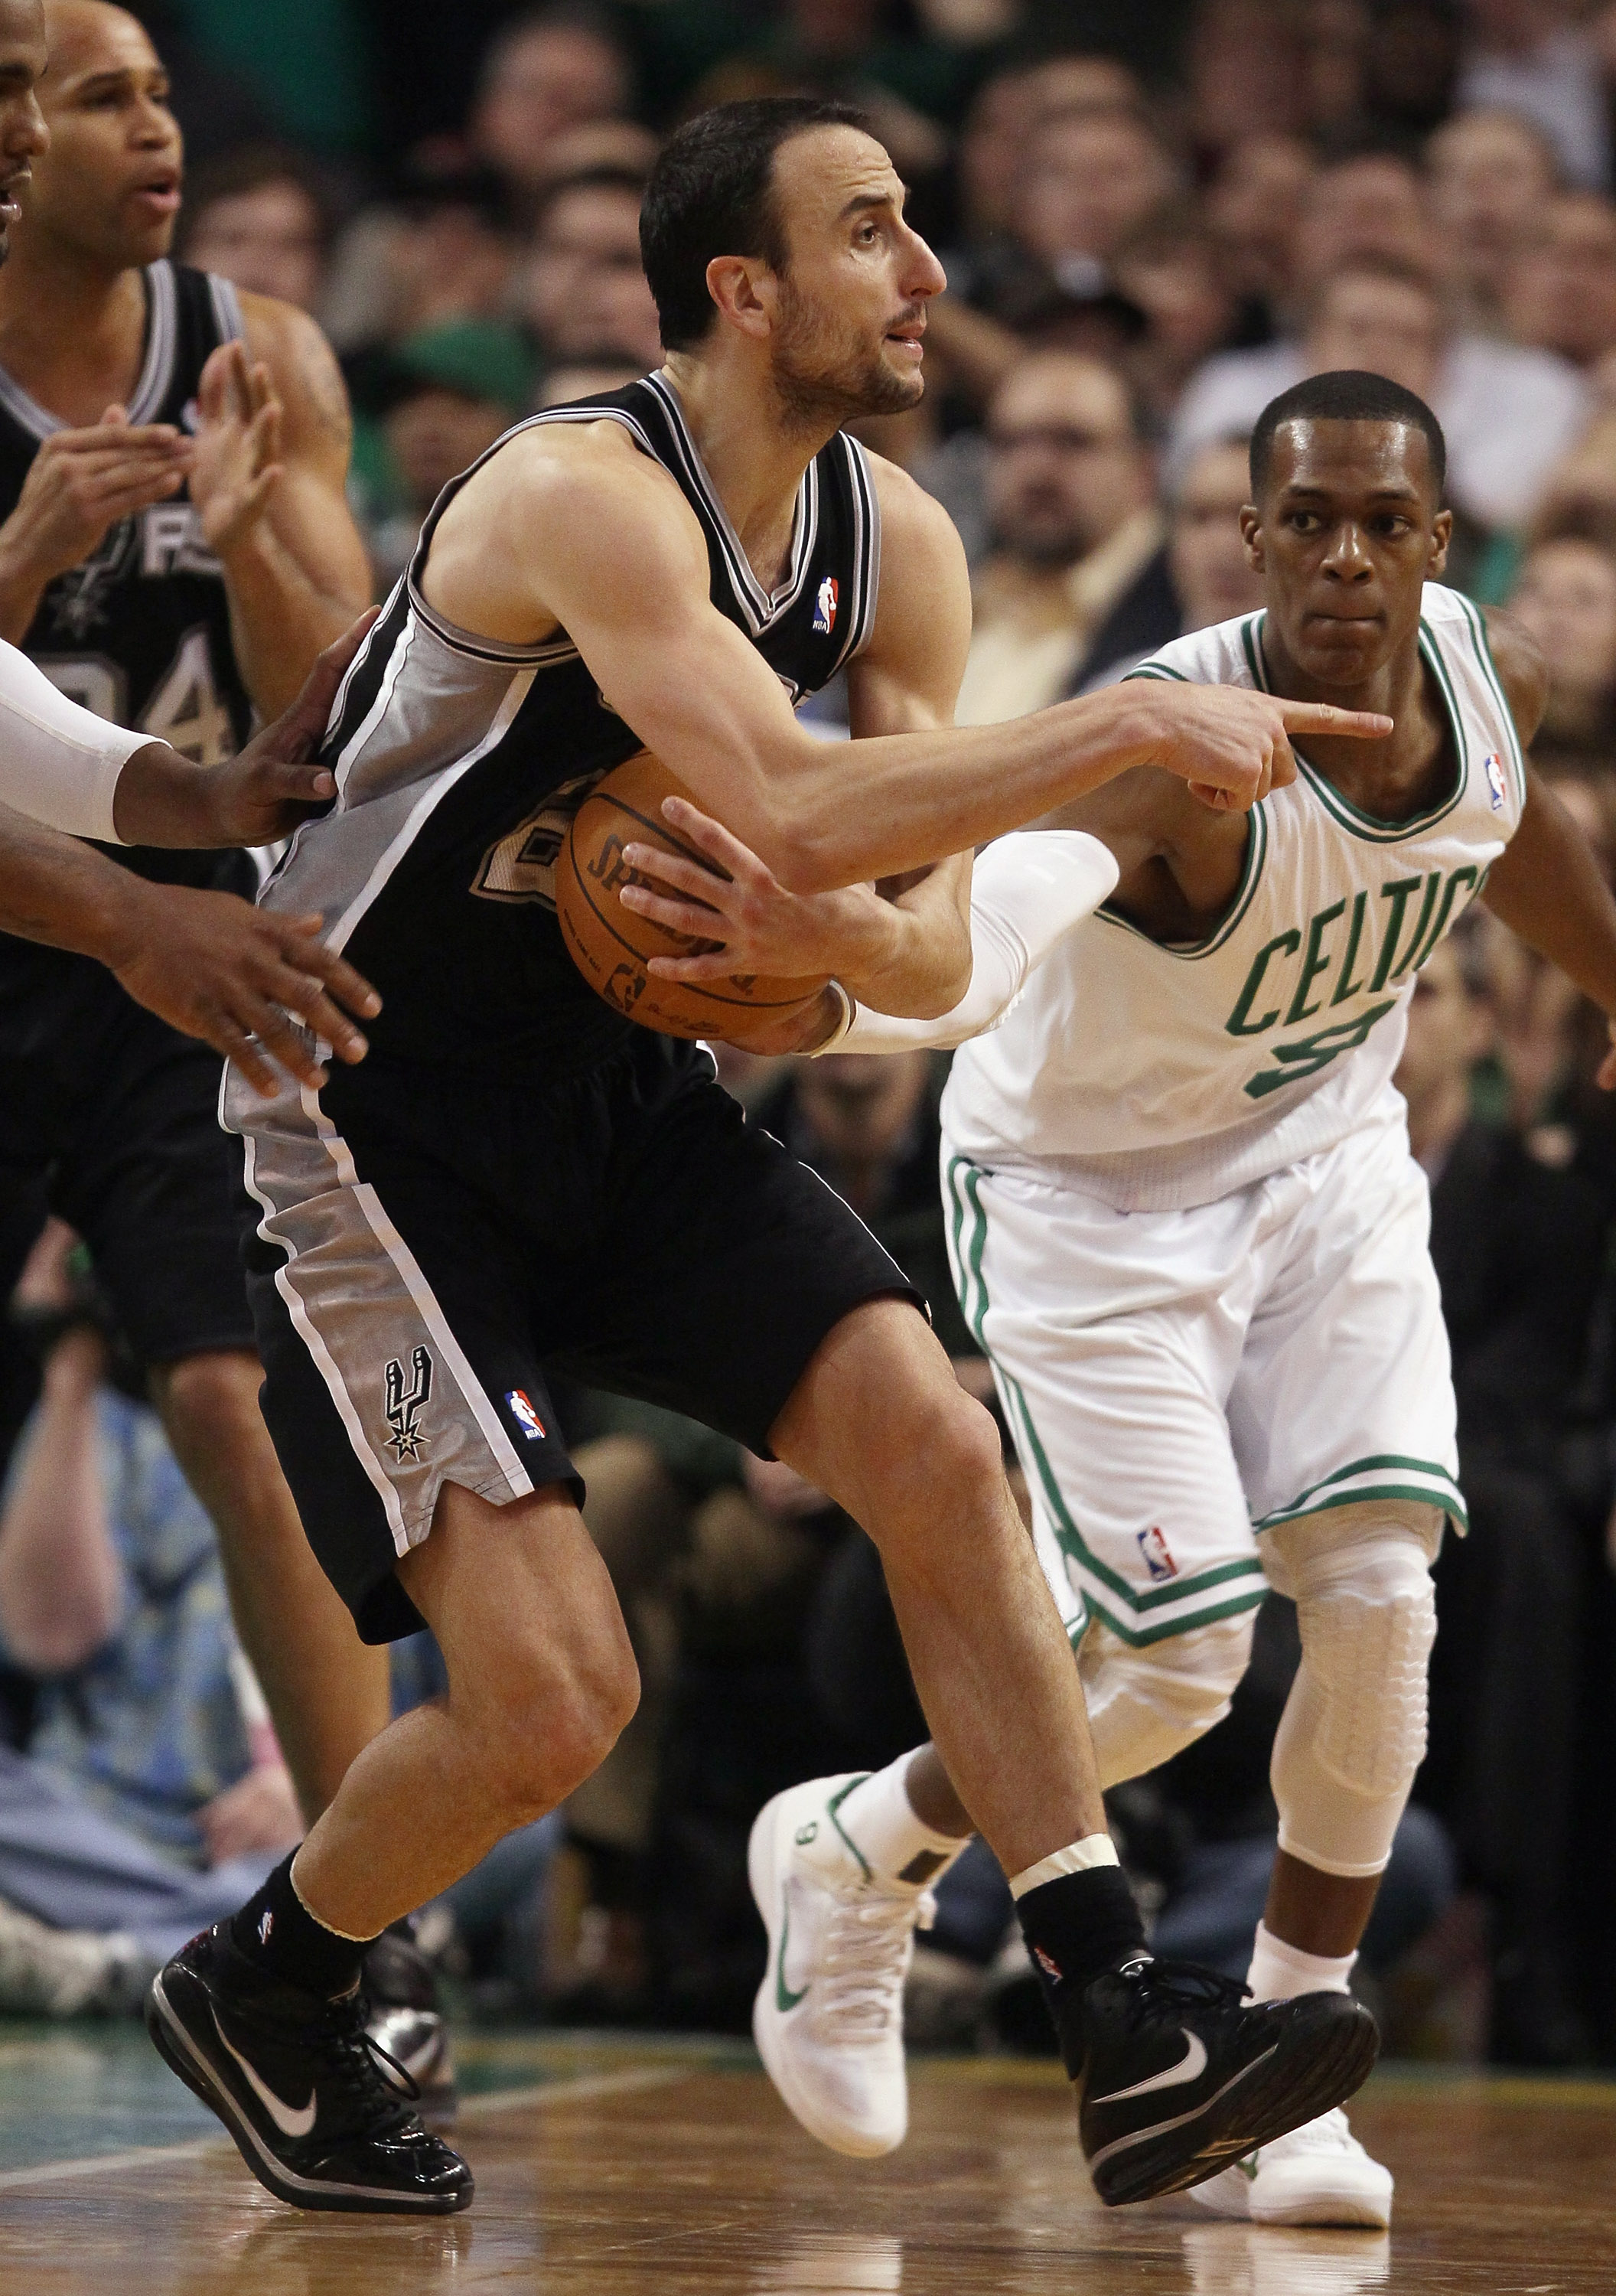 BOSTON, MA - JANUARY 05:  Manu Ginobili #20 of the San Antonio Spurs tries to keep the ball as Rajon Rondo #9 of the Boston Celtics defends on January 5, 2011 at the TD Garden in Boston, Massachusetts. The Celtics defeated the Spurs 105-103. NOTE TO USER: